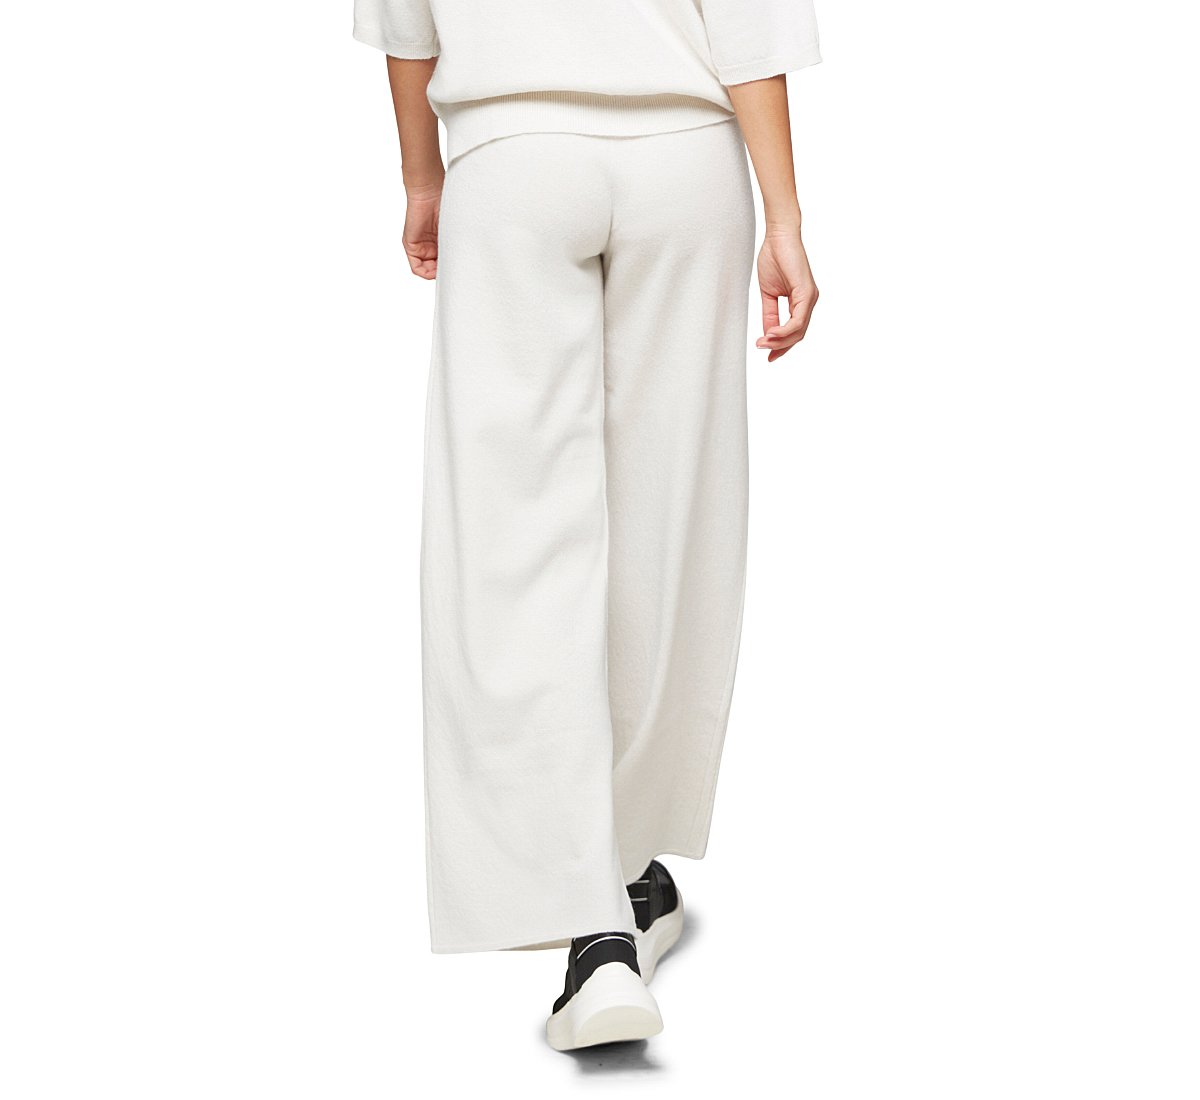 Soft fabric trousers